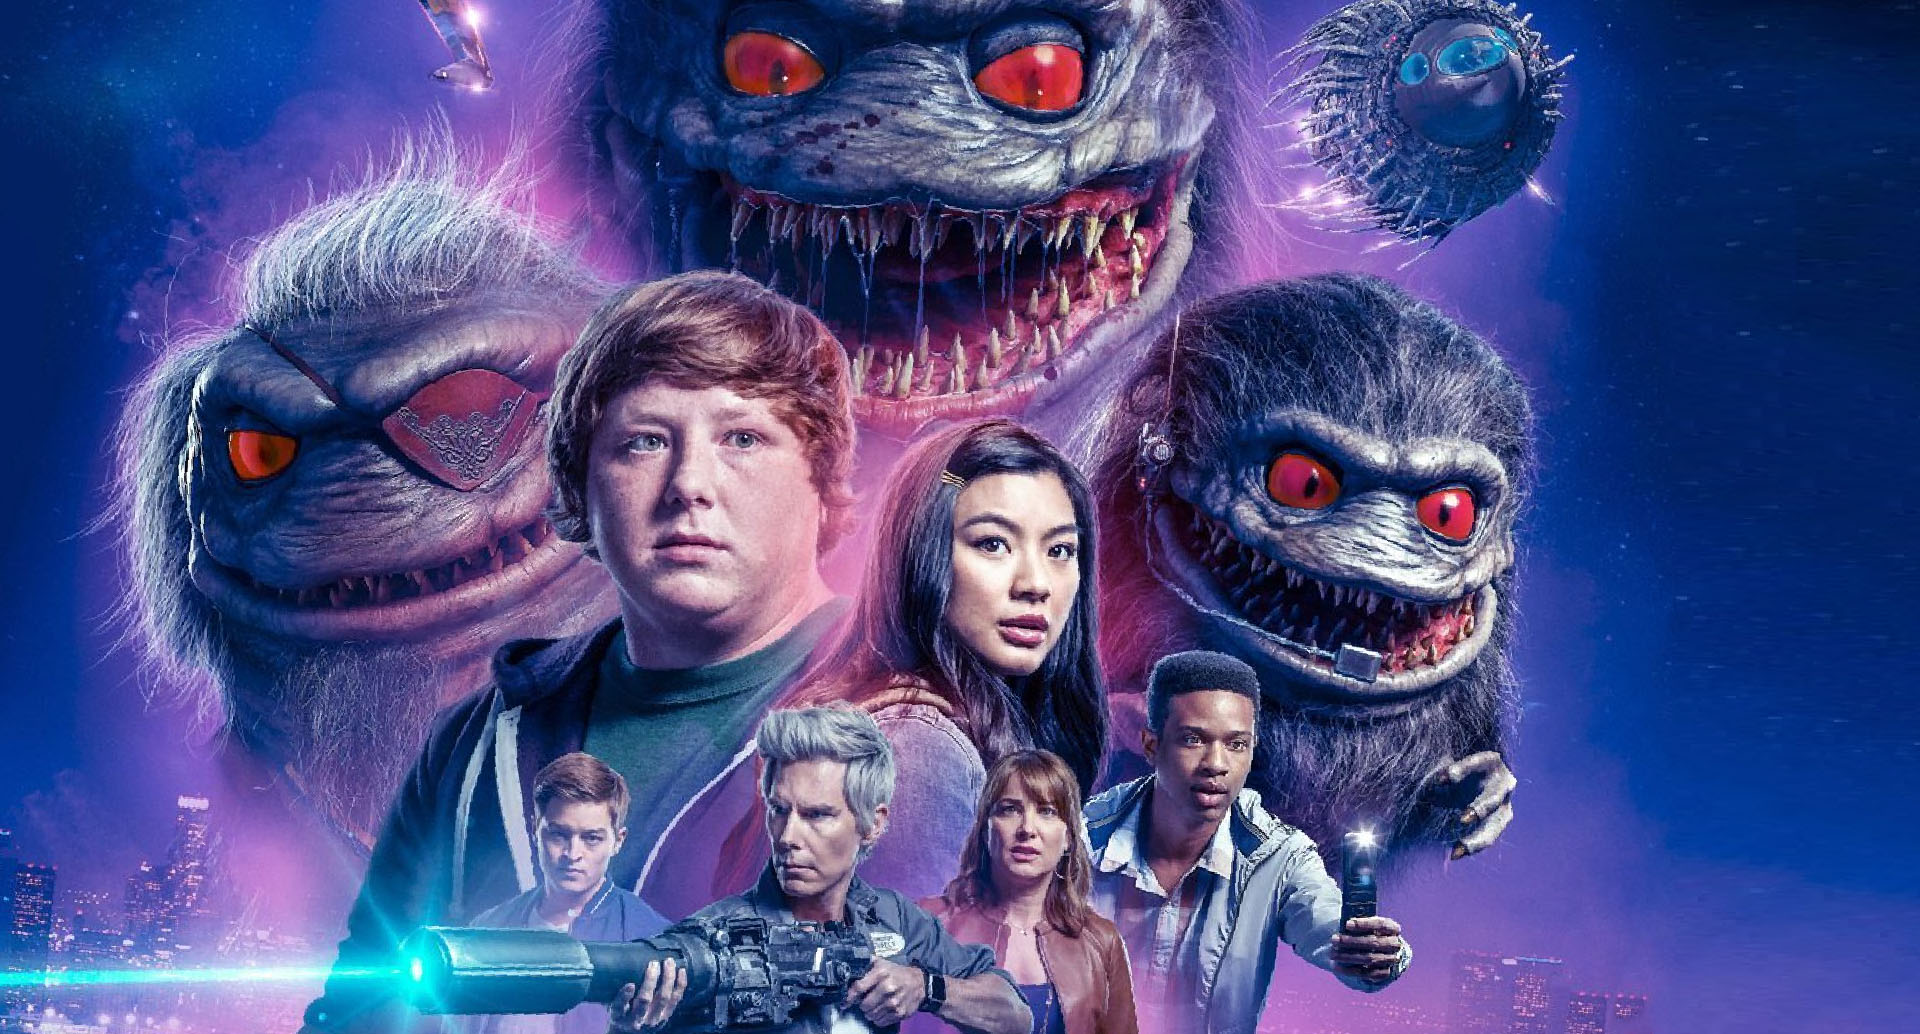 CRITTERS: A NEW BINGE PREMIER ON SHUDDER THIS MARCH